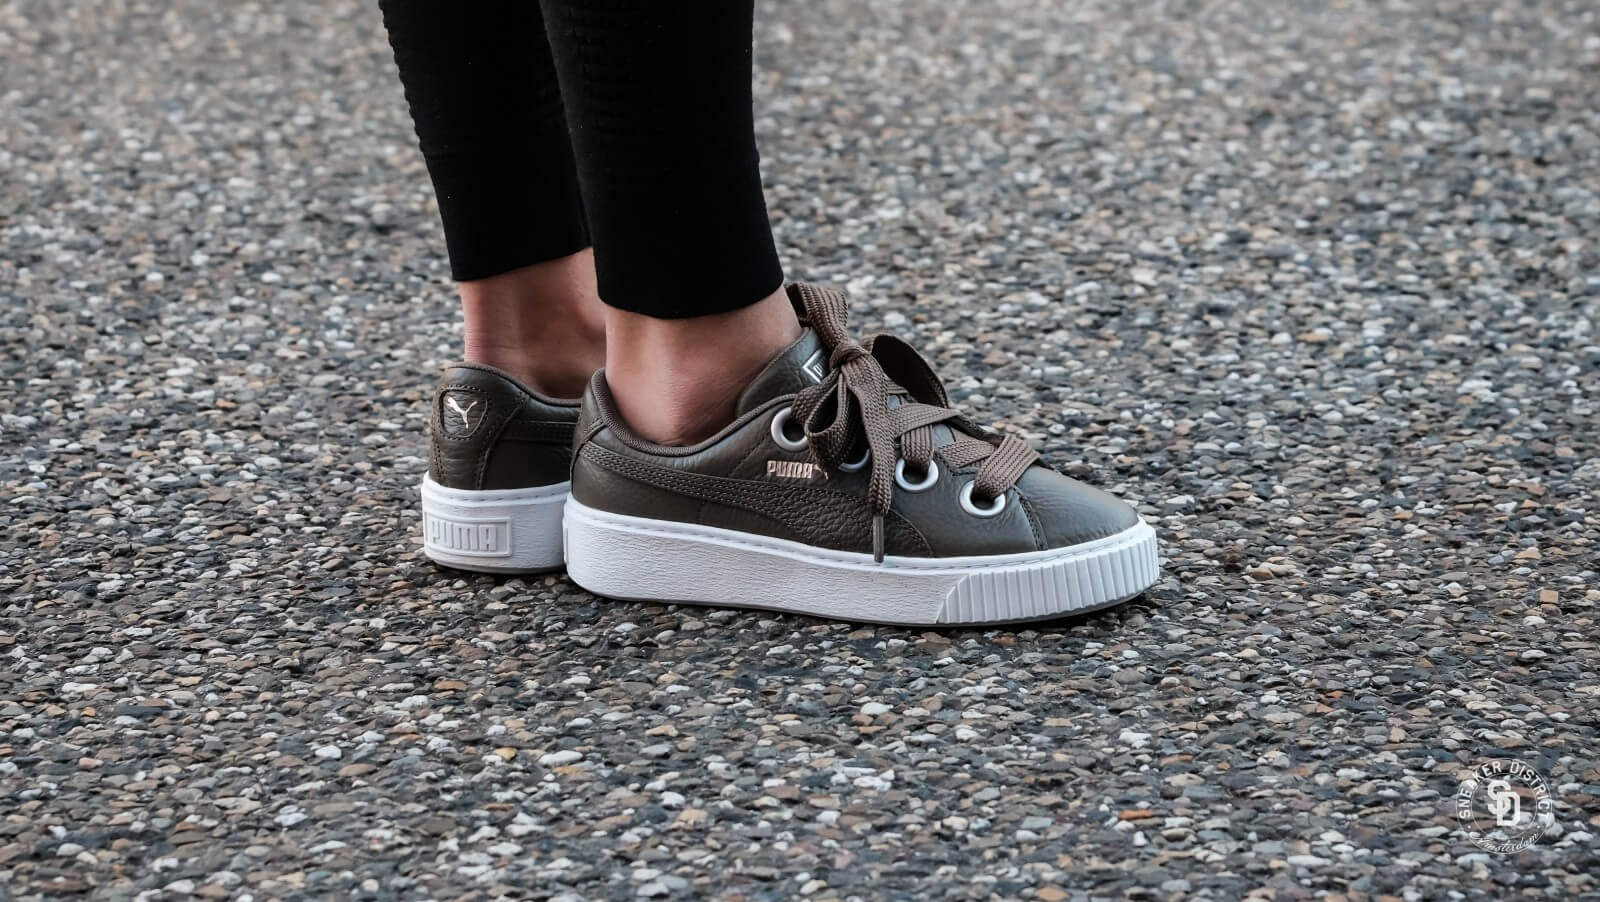 Platform Kiss Puma Outlet Store, UP TO 54% OFF